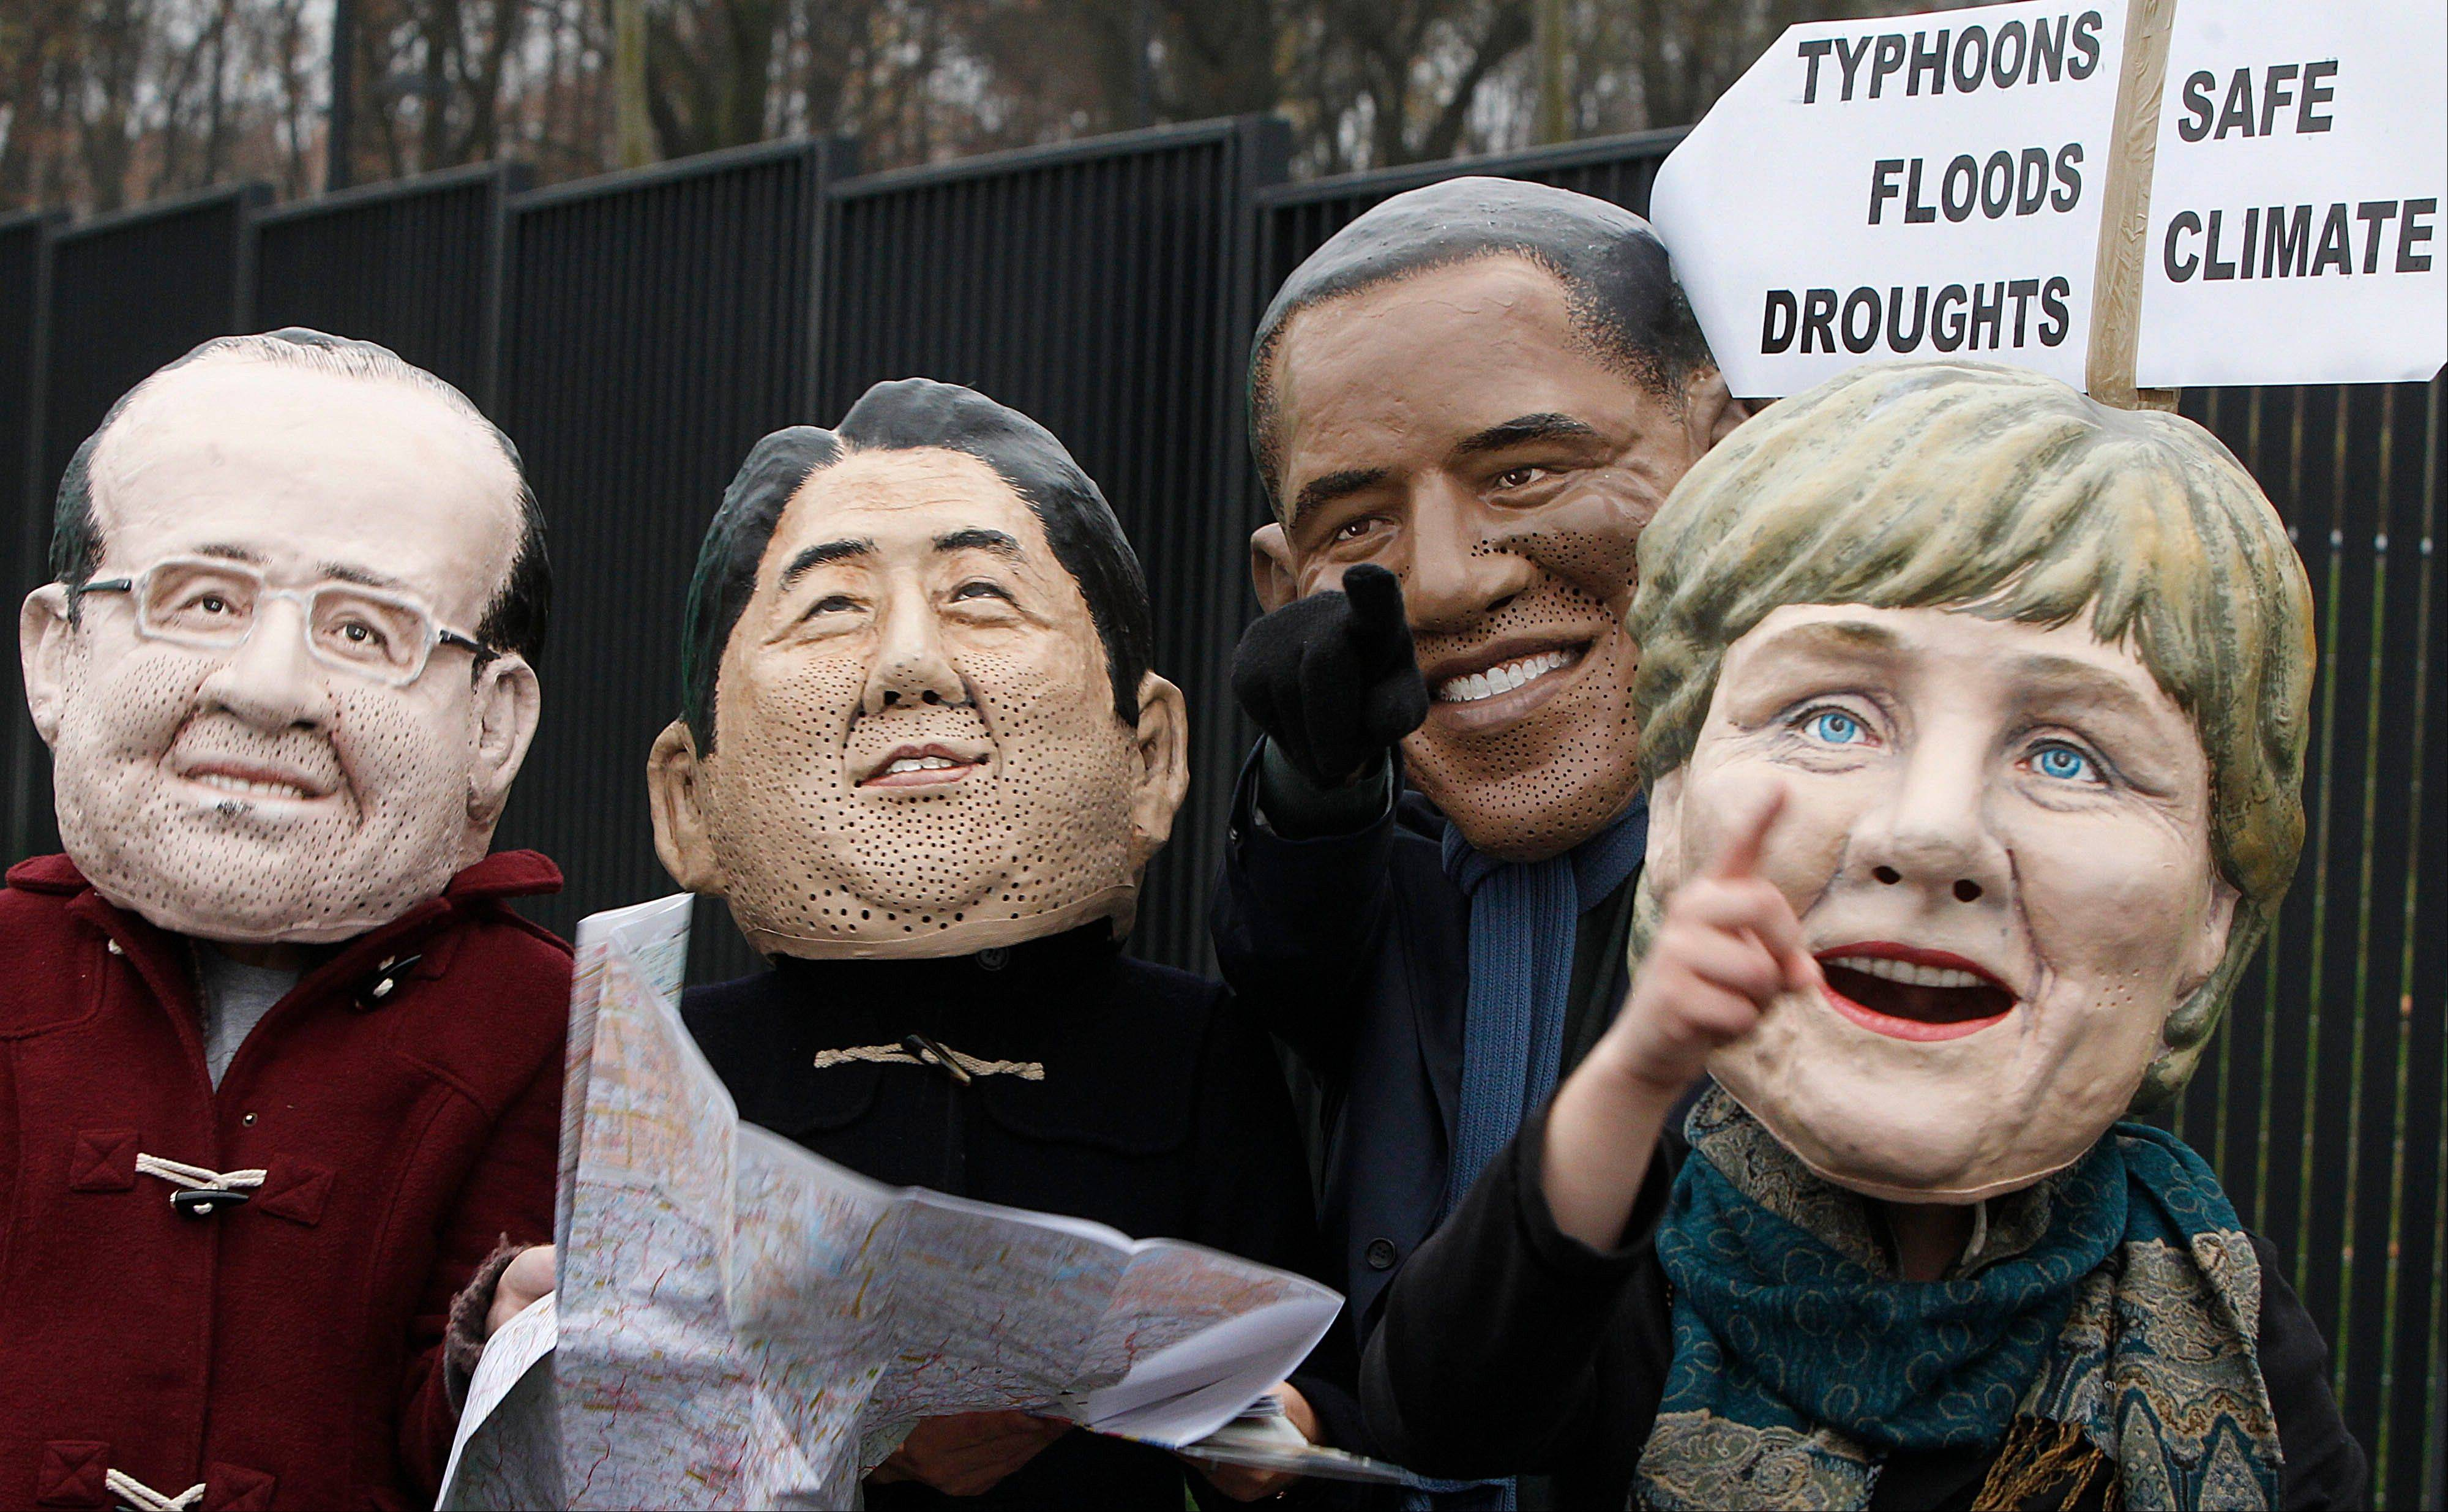 Climate activists protest Friday, acting in the role world leaders, in front of the U.N. climate change conference at the National Stadium in Warsaw, Poland. They are dressed as: French President Francois Hollande, Japan�s Prime Minister Shinzo Abe, U.S. President Barack Obama and German Chancellor Angela Merkel.